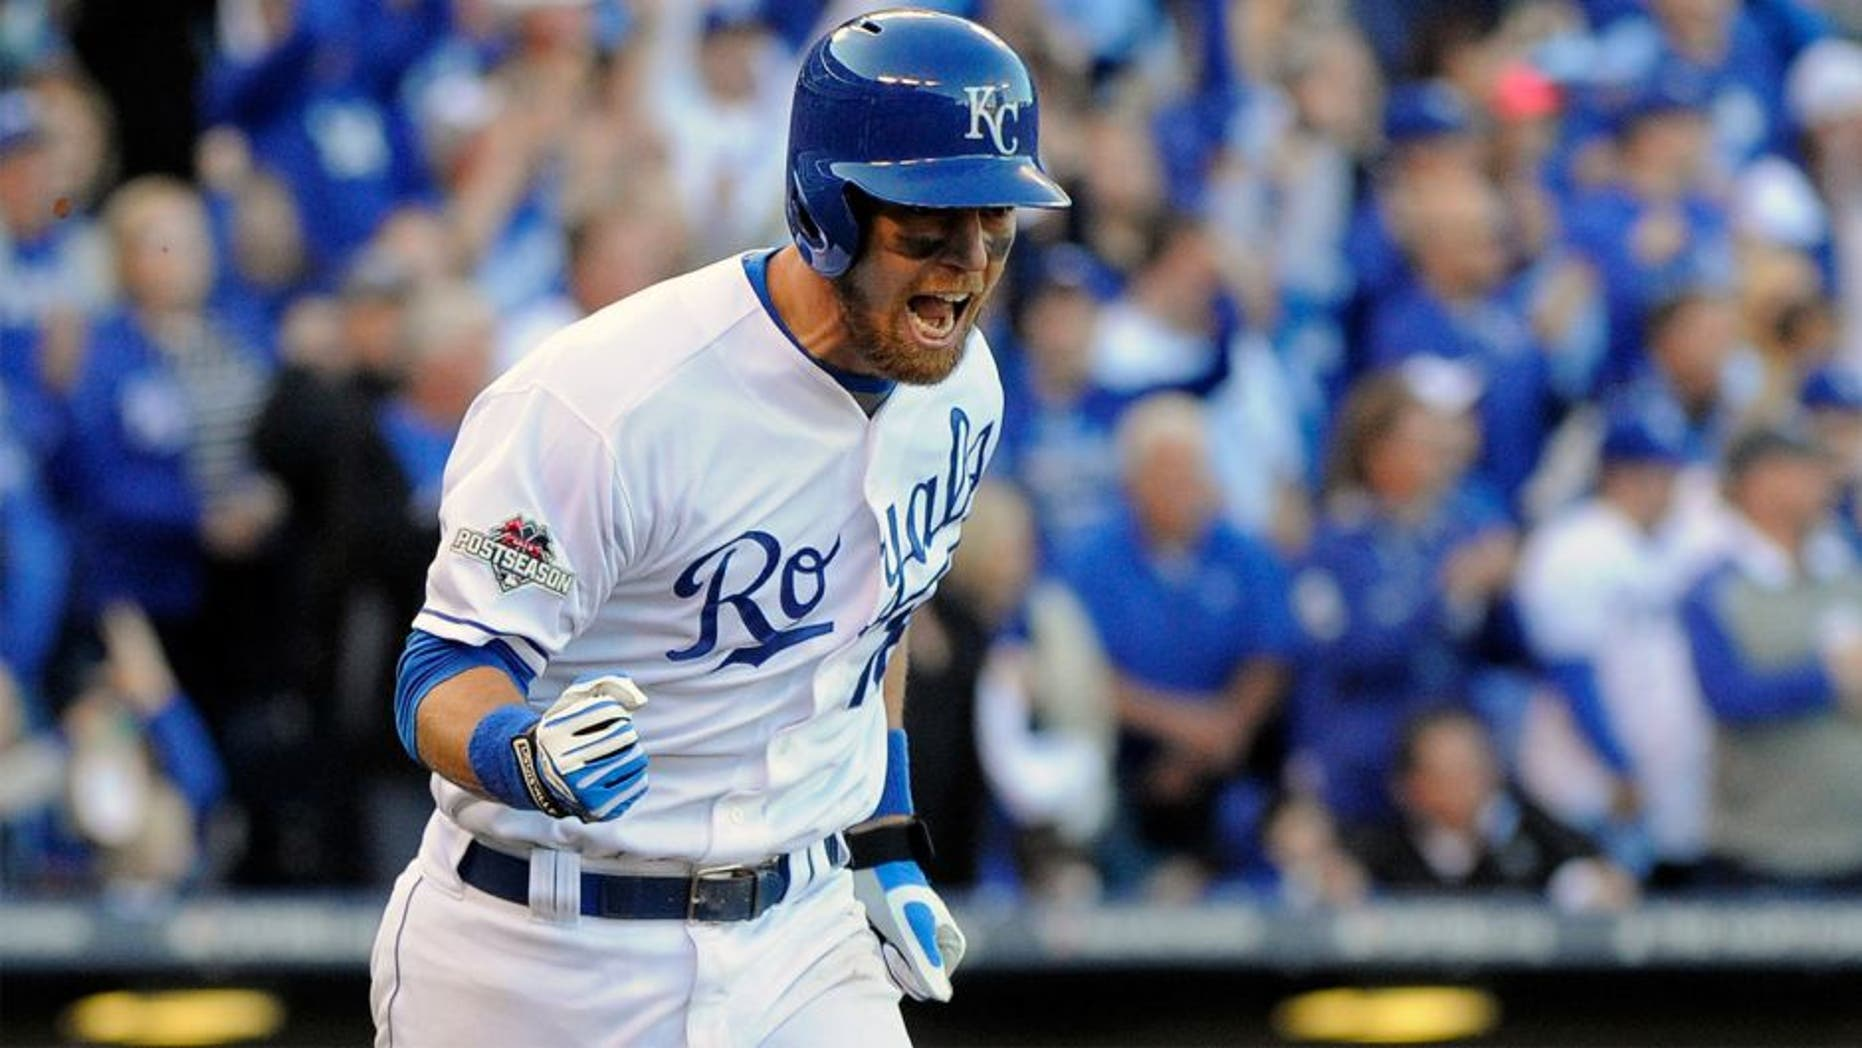 KANSAS CITY, MO - OCTOBER 09: Ben Zobrist #18 of the Kansas City Royals celebrates hitting an RBI single in the seventh inning against Will Harris #36 of the Houston Astros to score Alcides Escobar #2 during game two of the American League Division Series at Kauffman Stadium on October 9, 2015 in Kansas City, Missouri. (Photo by Ed Zurga/Getty Images)